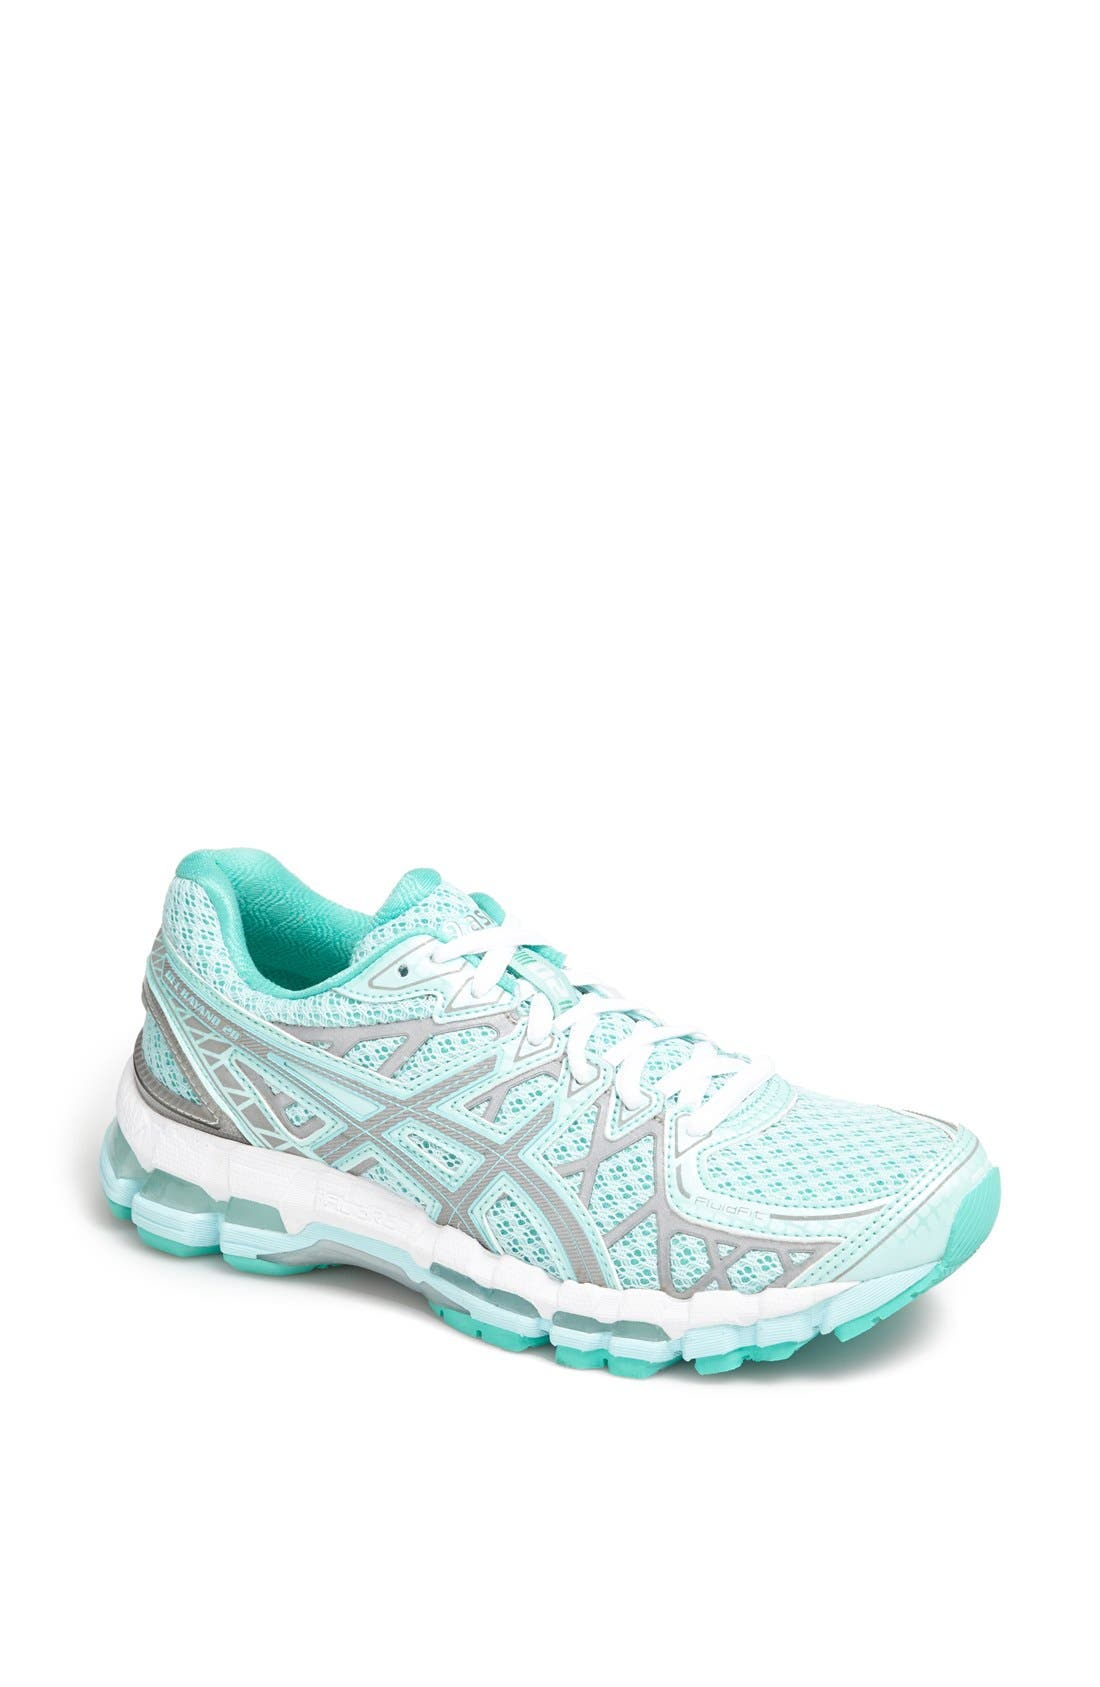 Main Image - ASICS® 'GEL-Kayano® 20 Lite' Running Shoe (Women) (Regular Retail Price: $169.95)